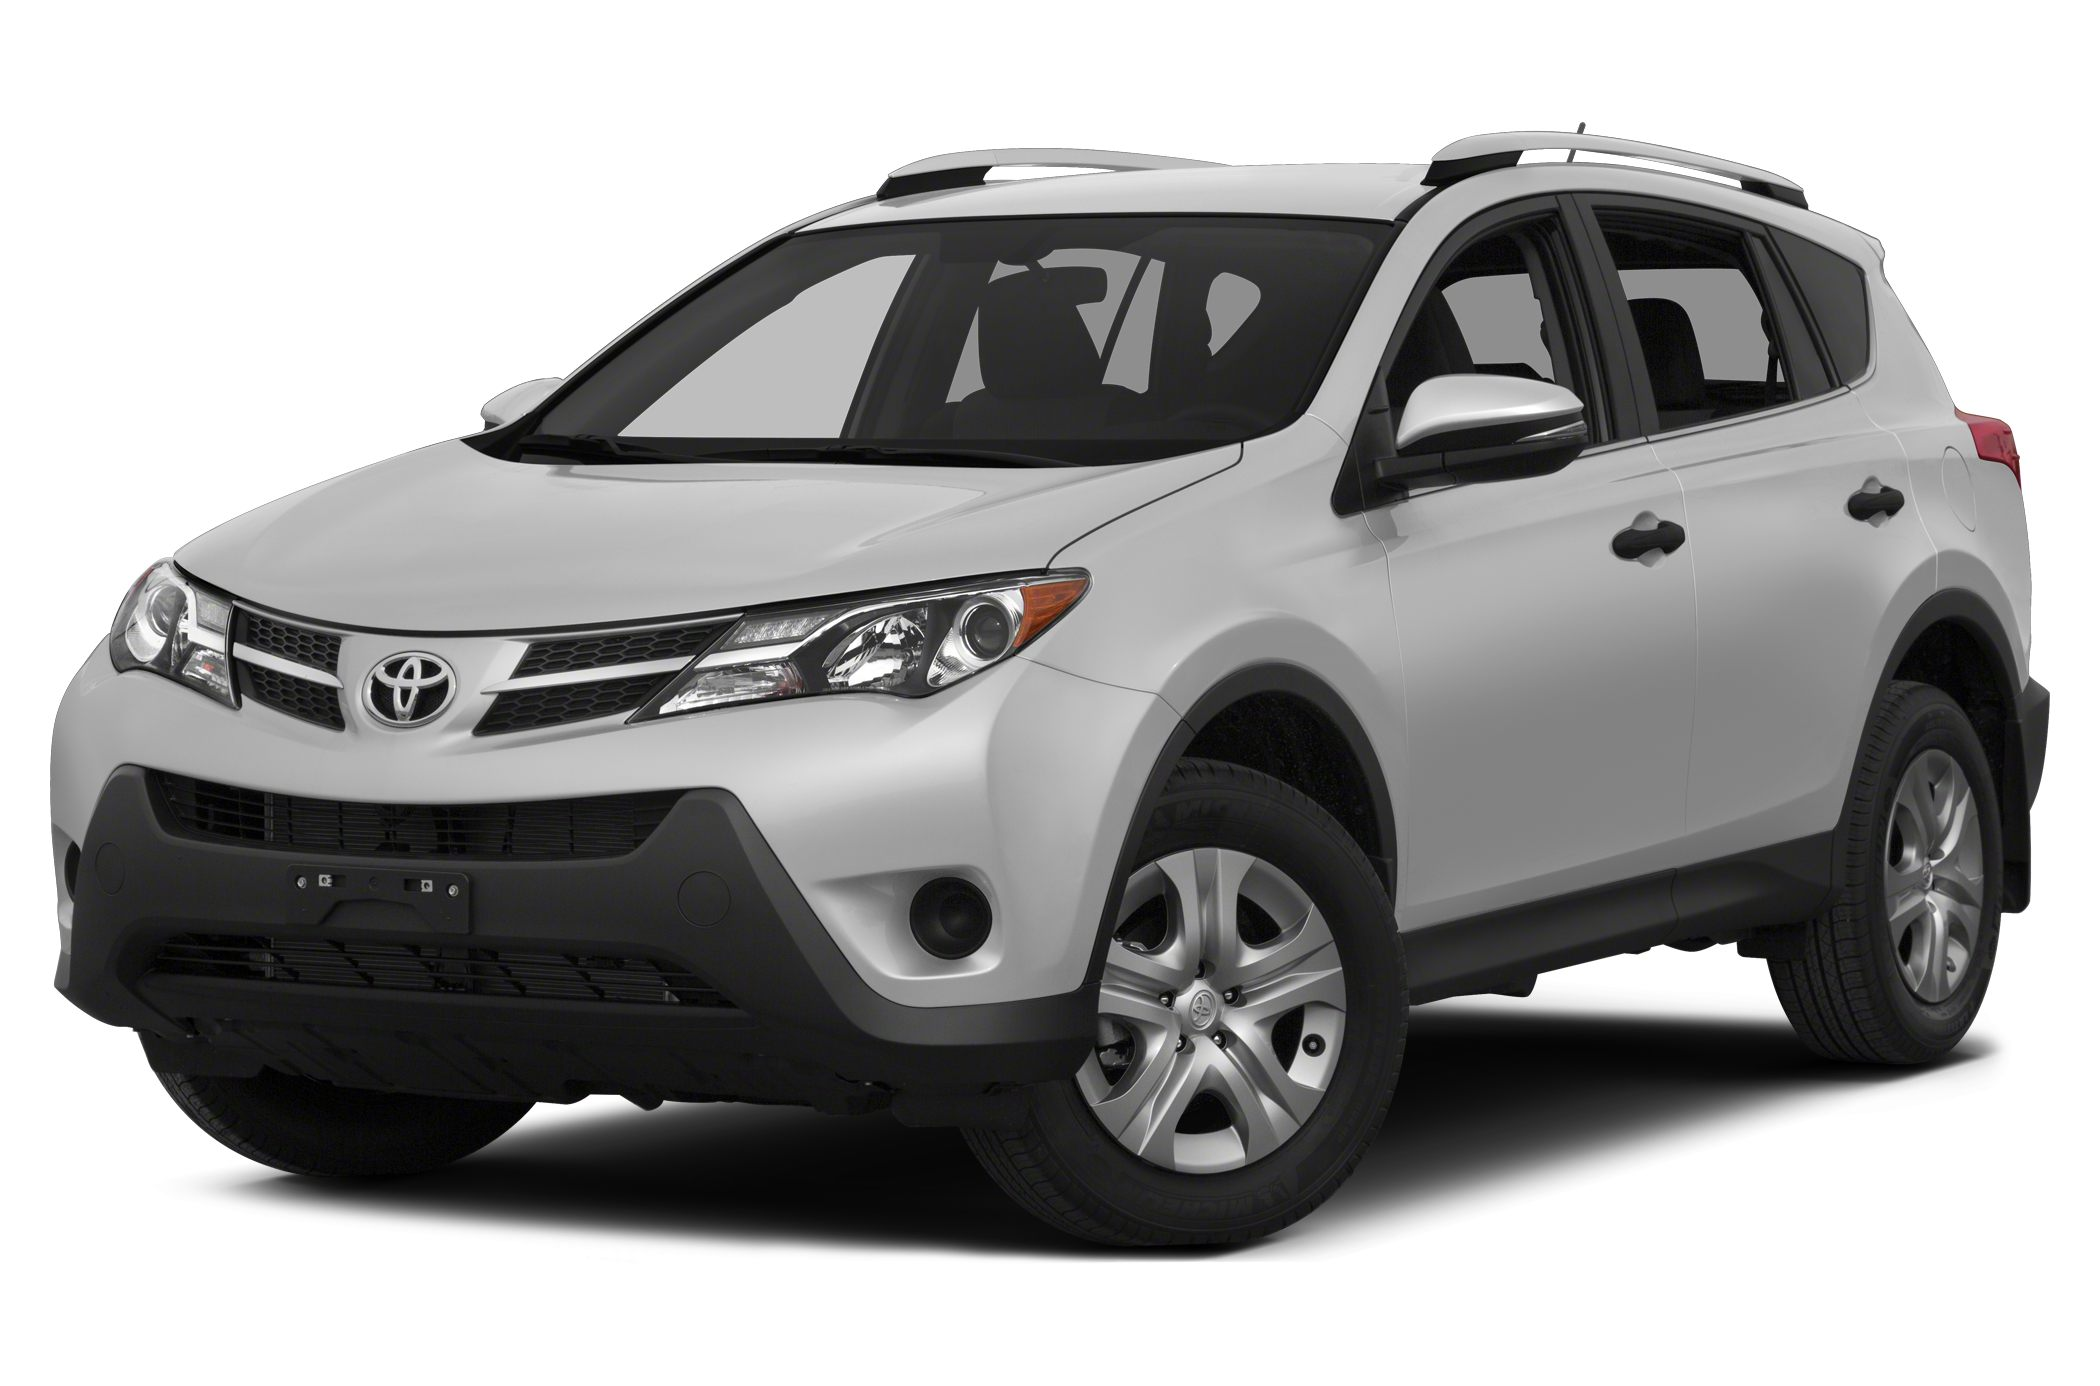 2015 Toyota RAV4 XLE SUV for sale in Dalton for $28,057 with 1 miles